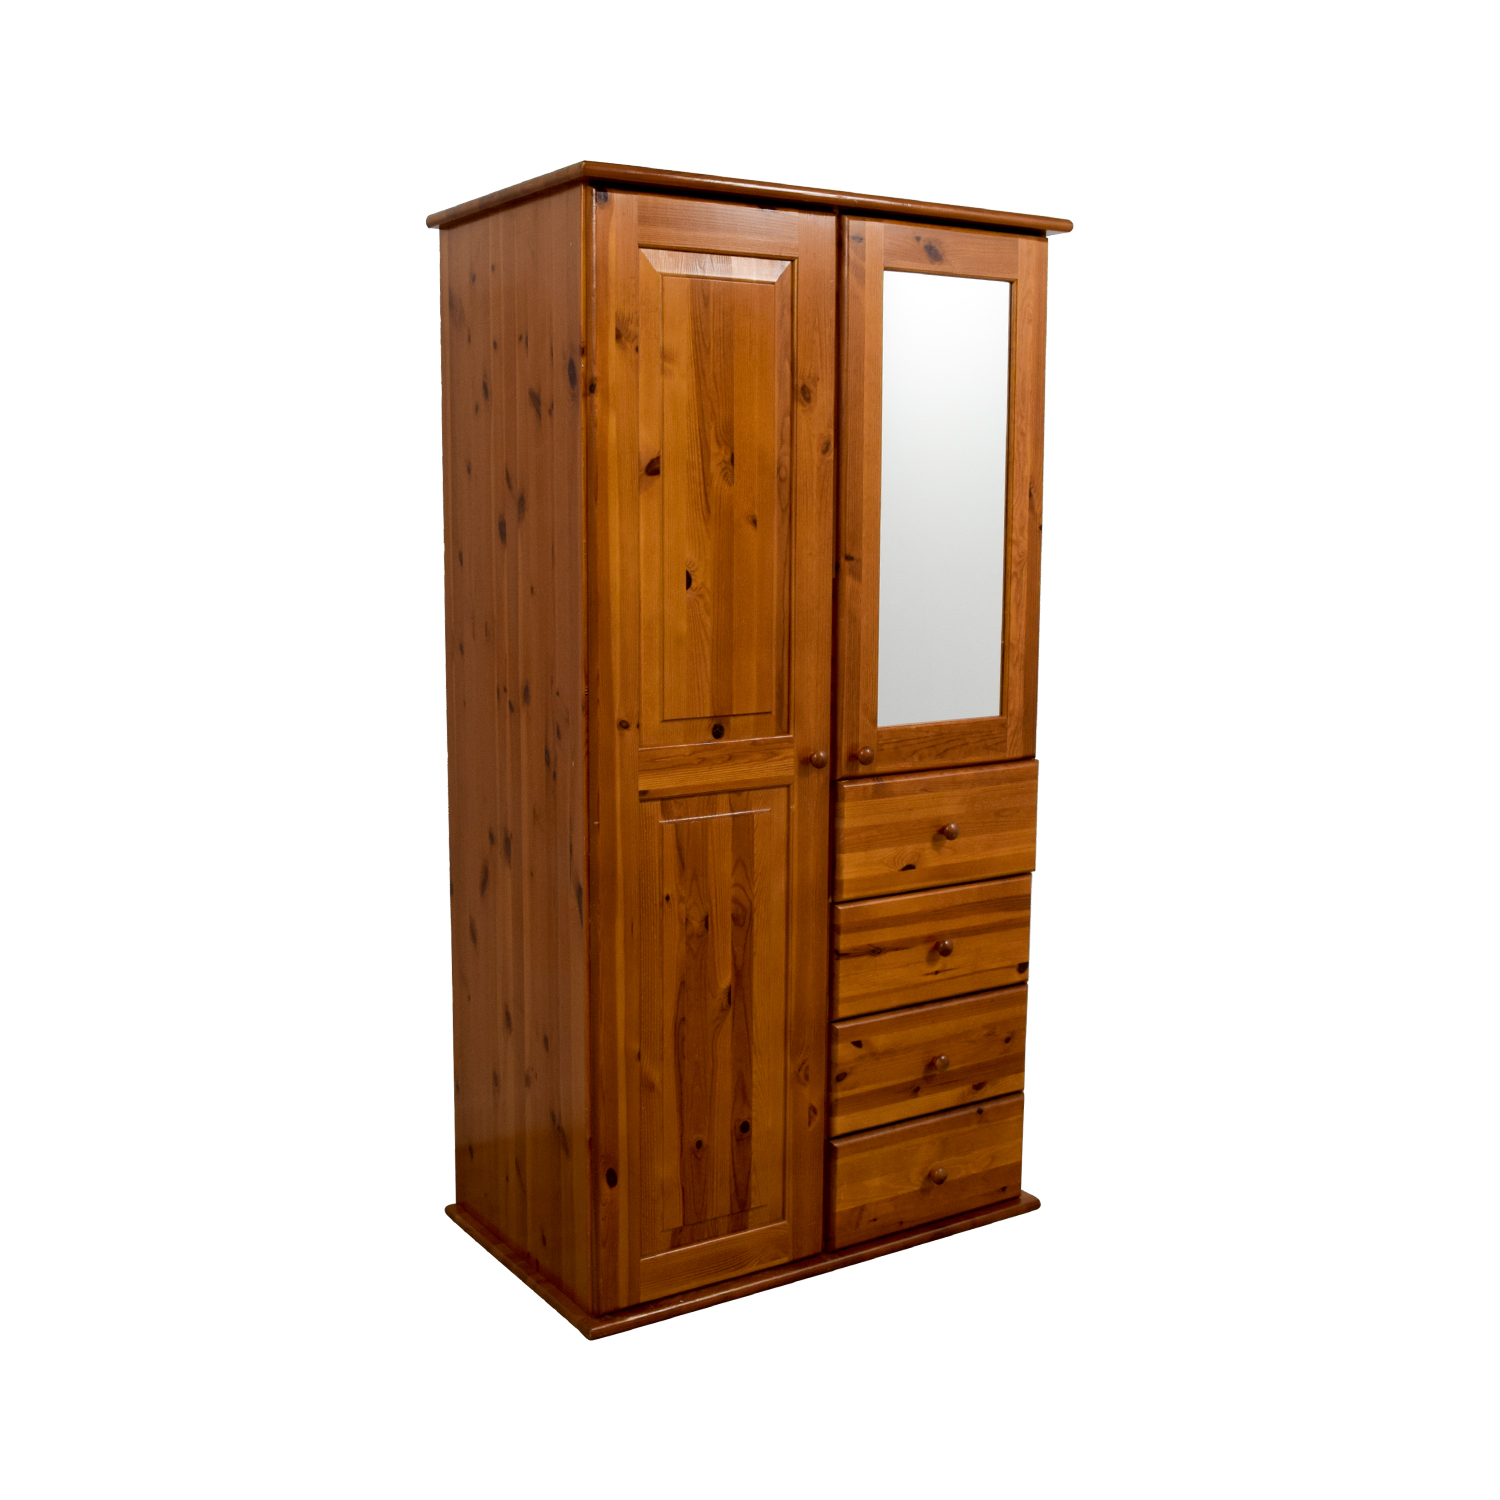 Wood Armoire with Rack Drawers and Shelves for sale